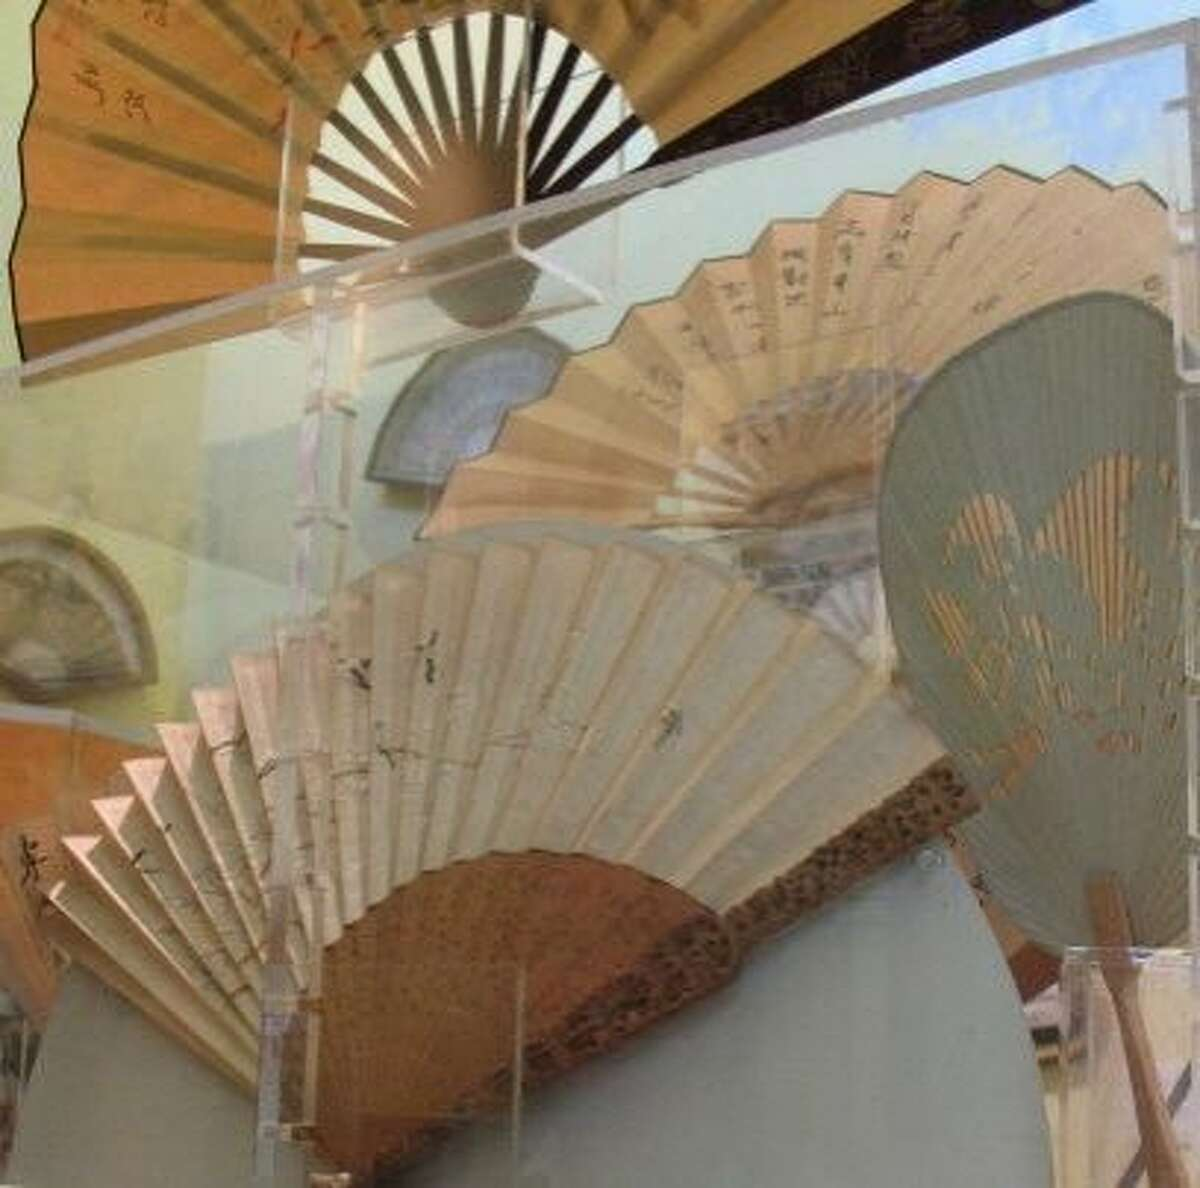 Hand Fan Museum Healdsburg Love the elegance of hand fans? You've found your nirvana at the Hand Fan Museum in Healdsburg. The museum houses a collection of fans from around the world. It is, perhaps unsurprisingly, the only hand fan museum in the United States.